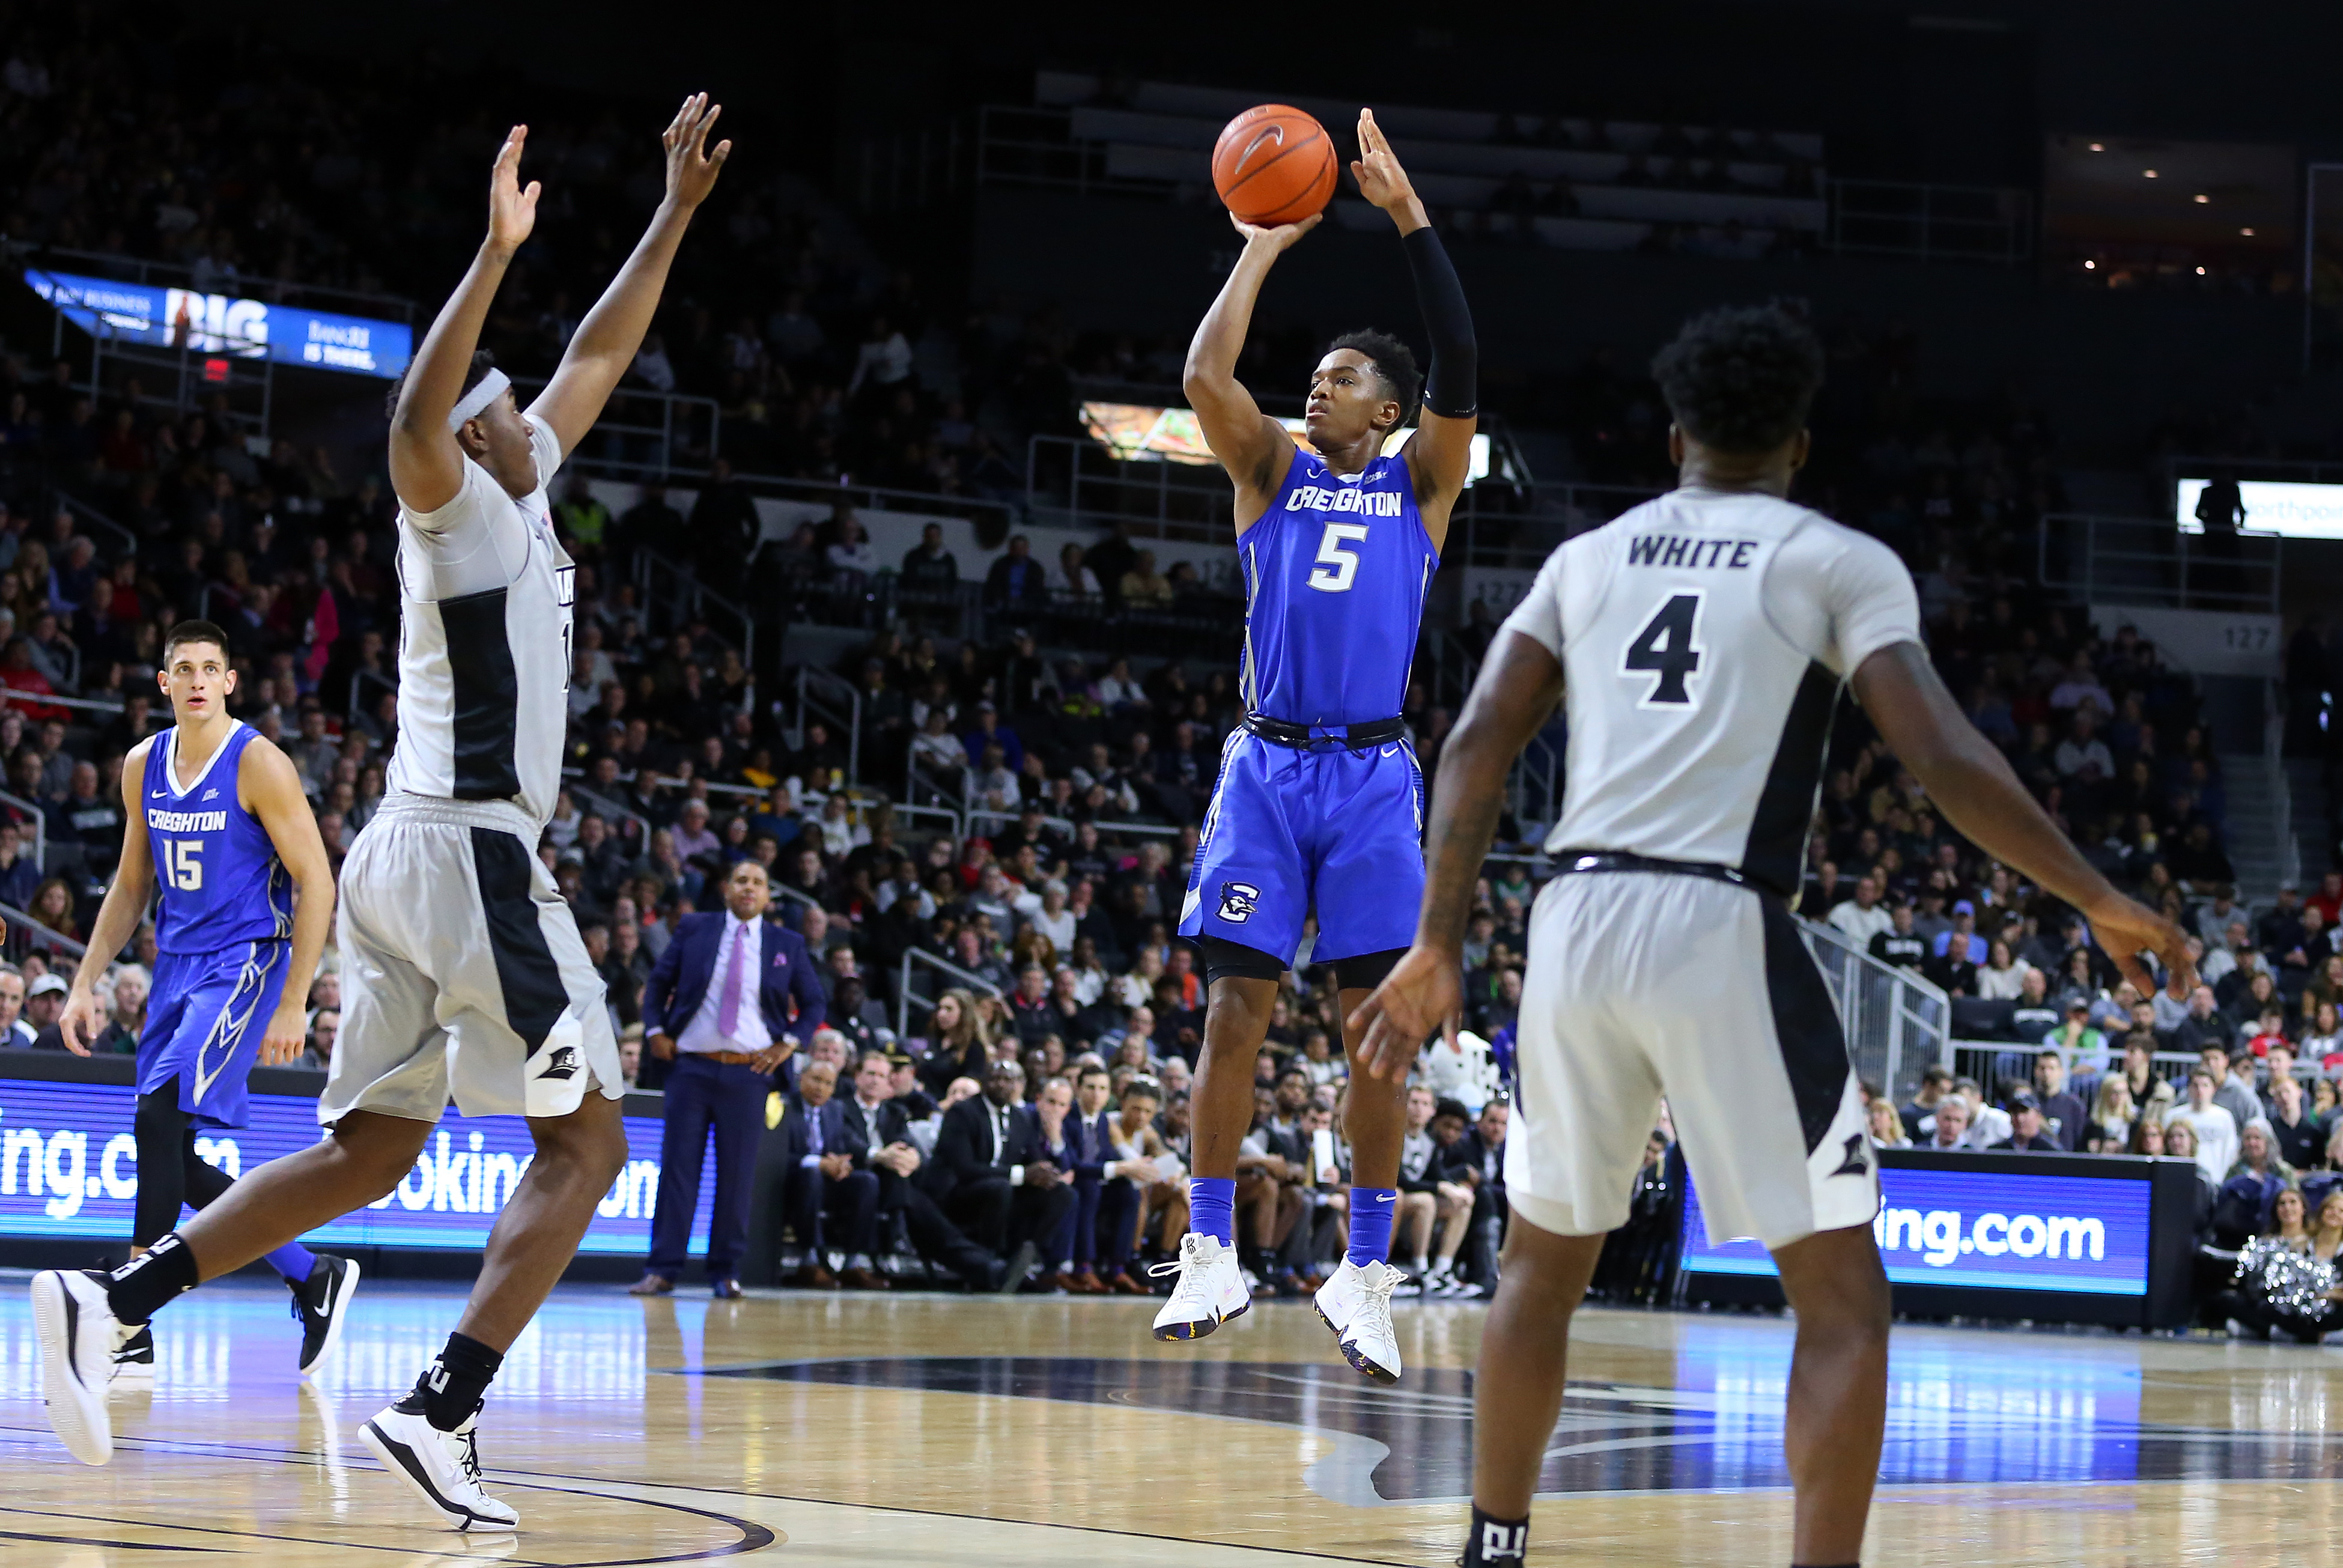 COLLEGE BASKETBALL: DEC 31 Creighton at Providence